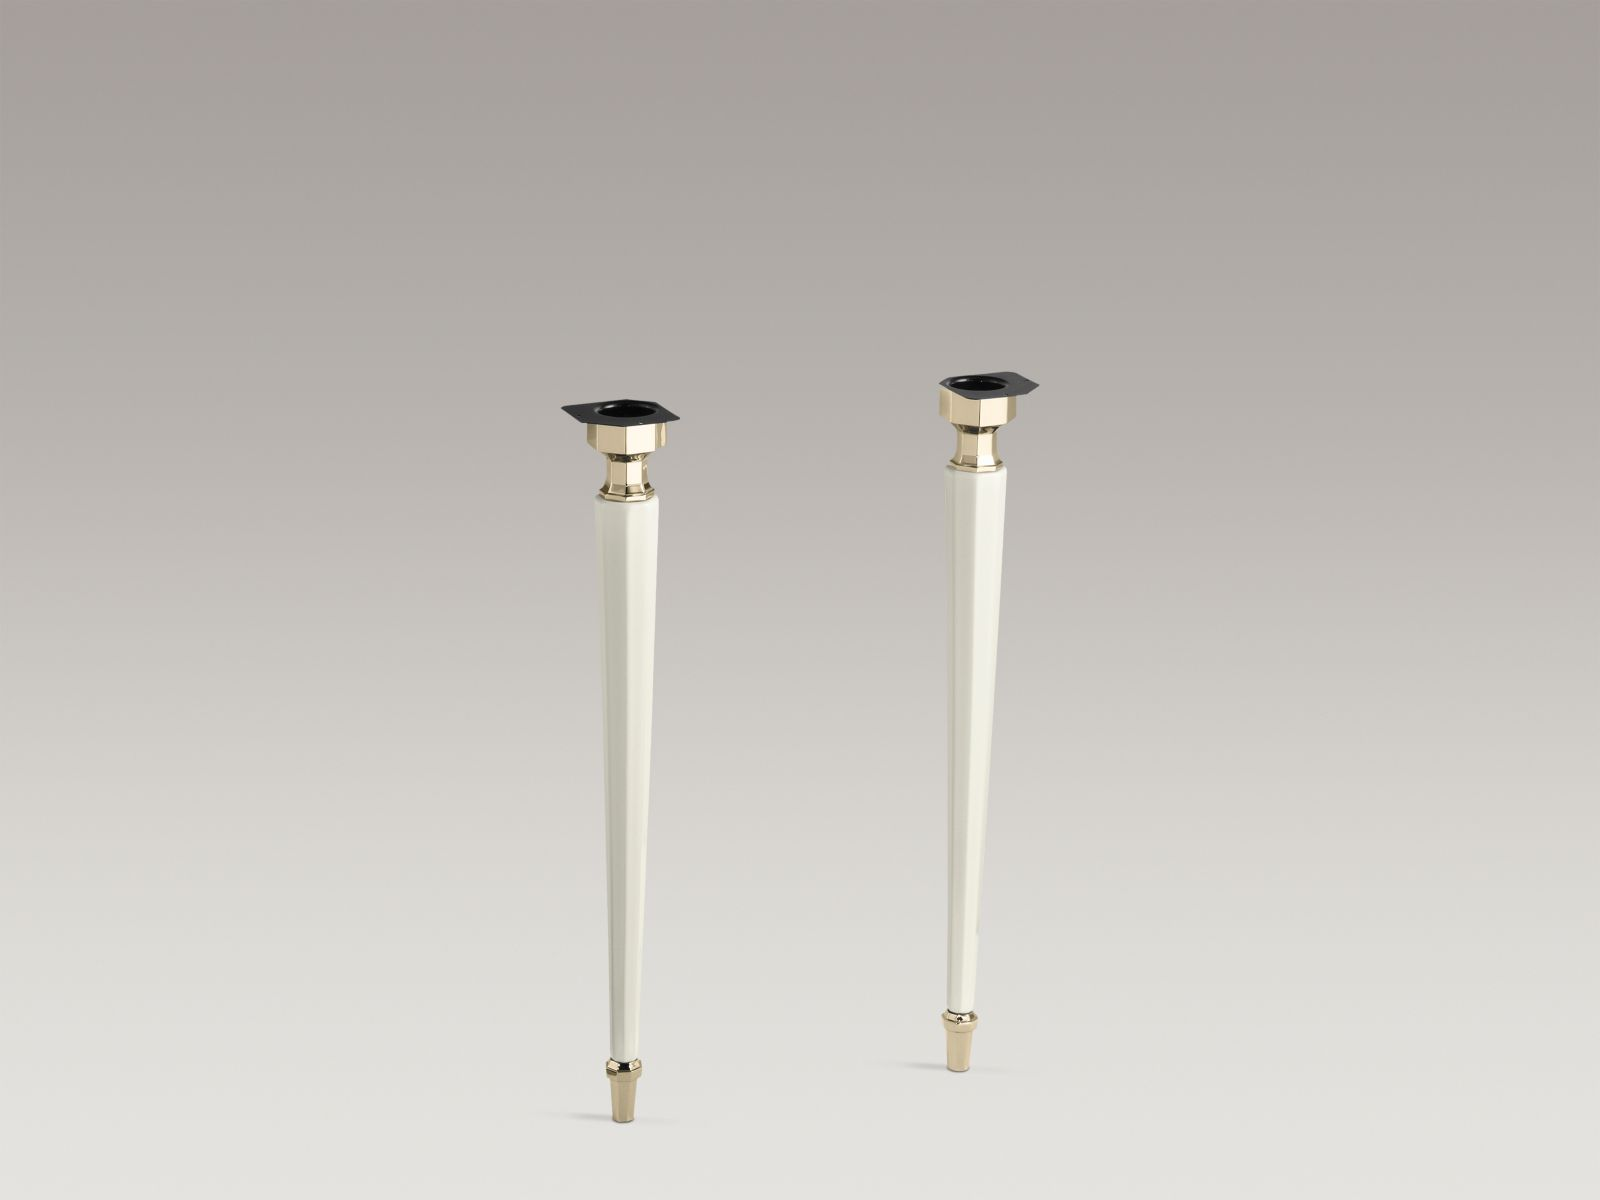 Kohler K-2317-AF-96 Kathryn Octagonal Fireclay Legs with Vibrant French Gold Trim Biscuit